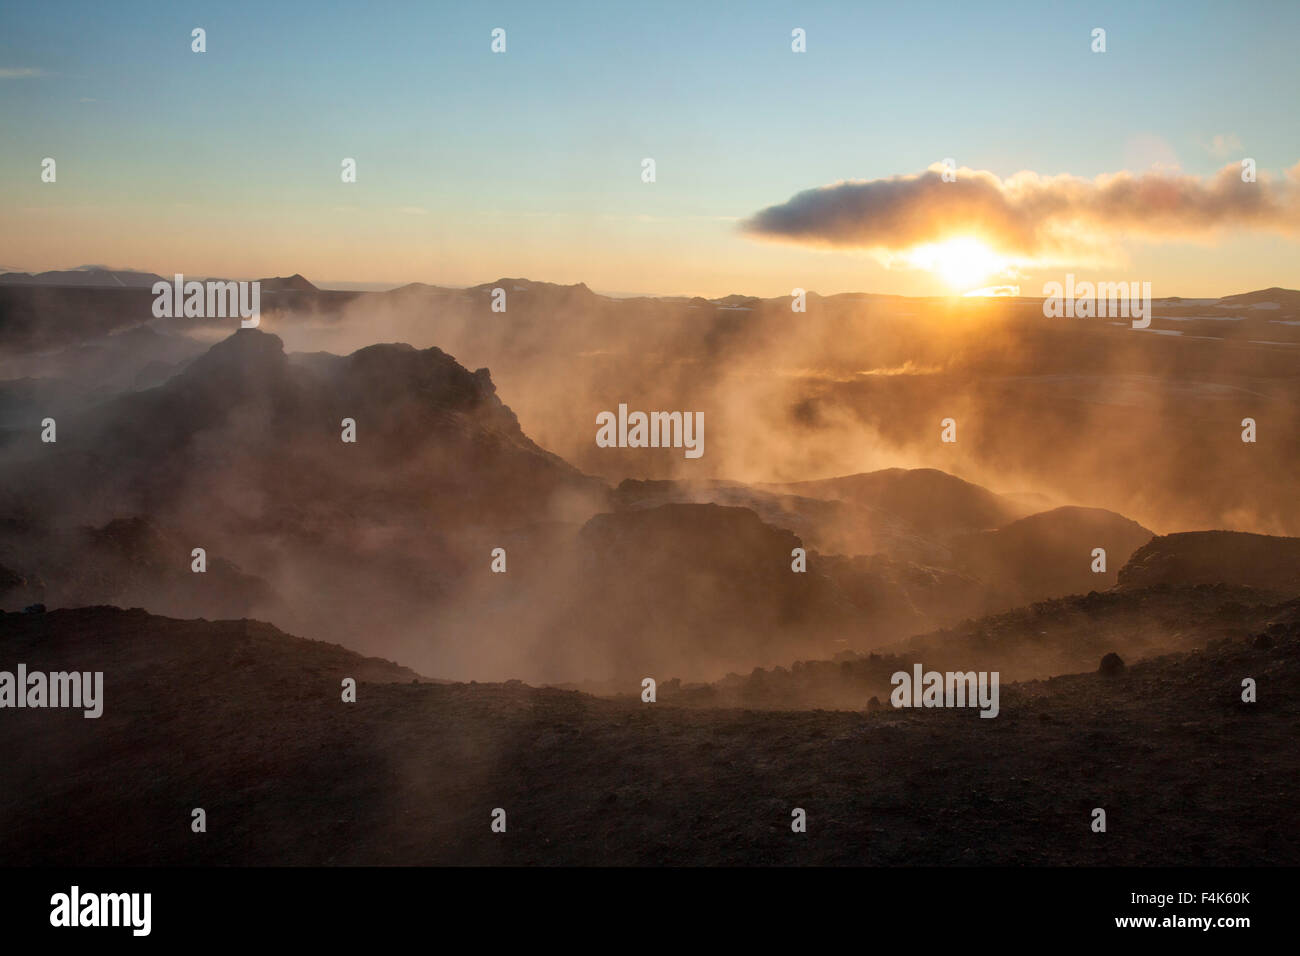 Sunrise over the smouldering lava field at Leirhnjukur, Krafla volcano, Myvatn, Nordhurland Eystra, Iceland. - Stock Image